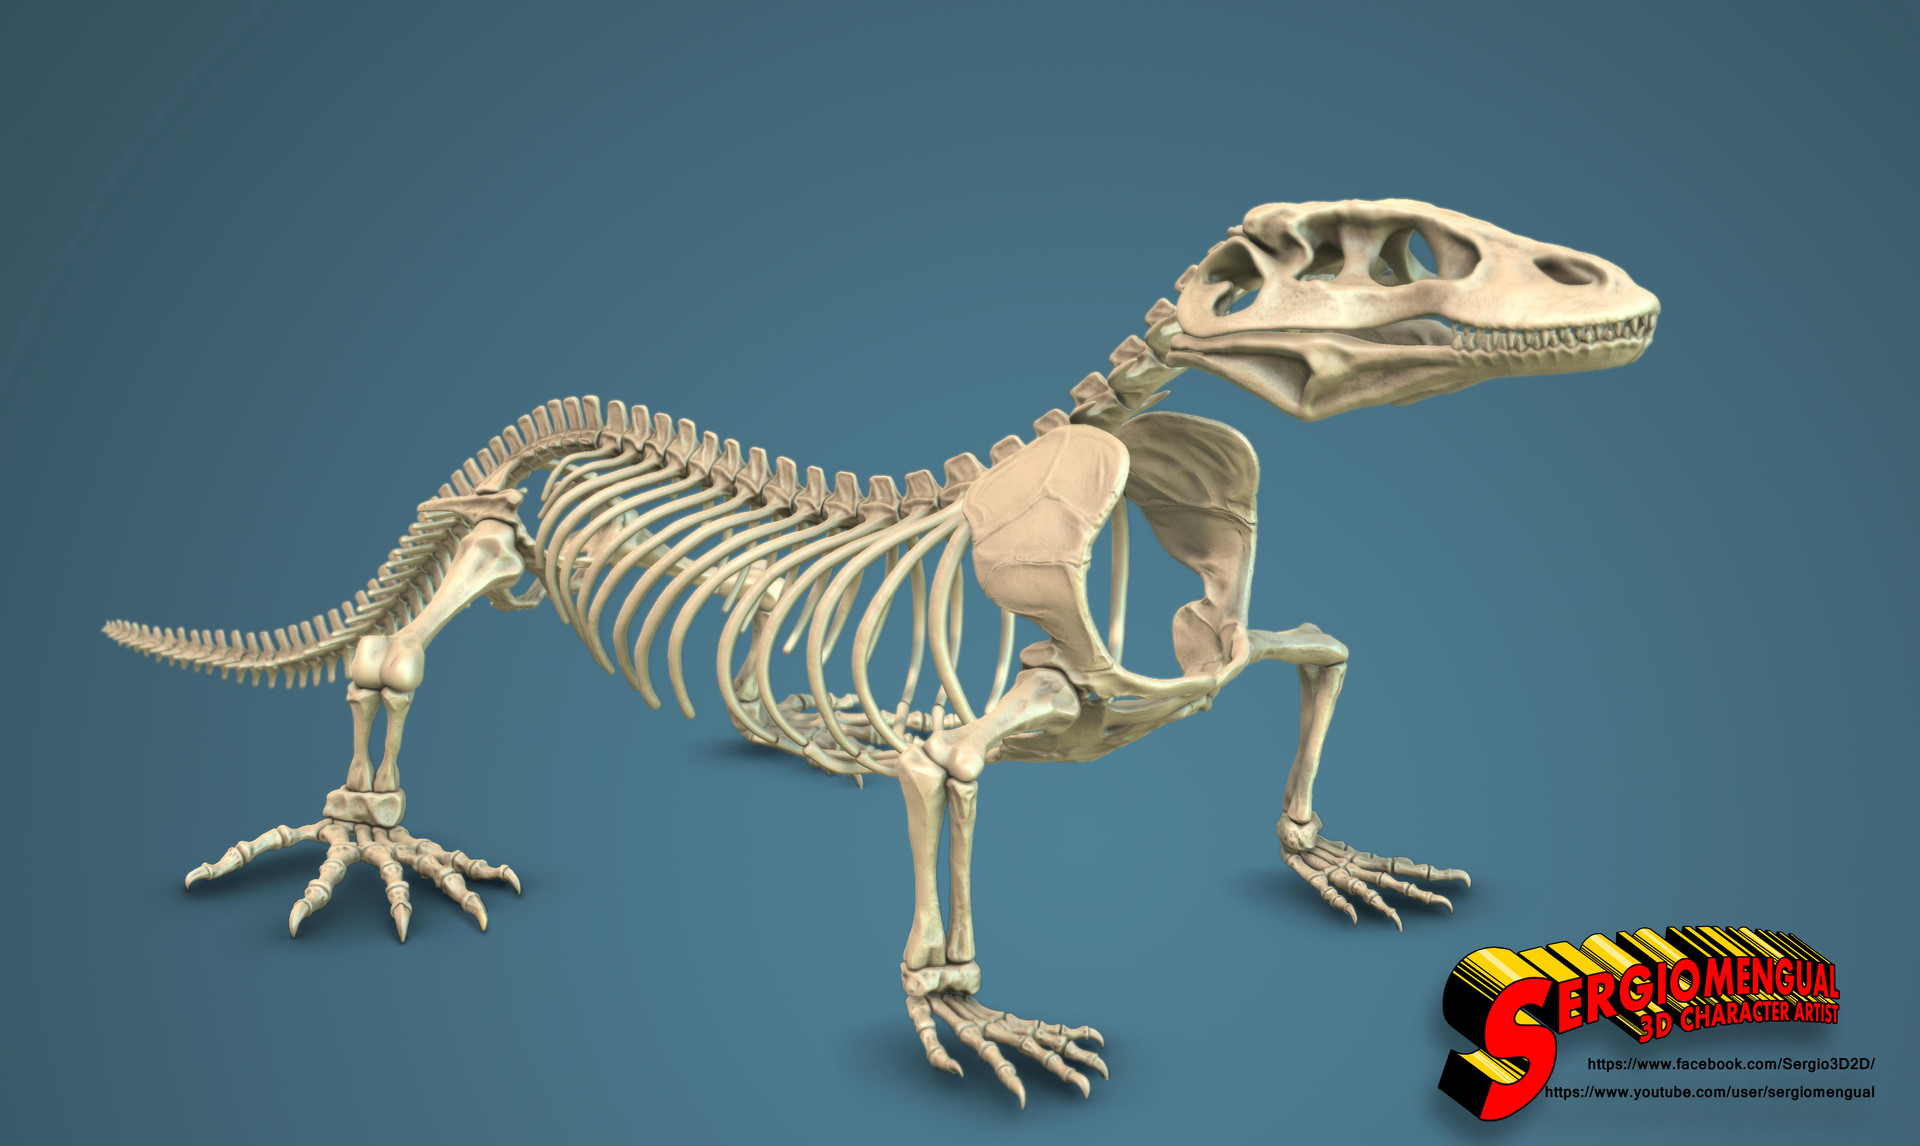 Autodesk Home Designer Sergio Gabriel Mengual Komodo Dragon Skeleton By Sergio